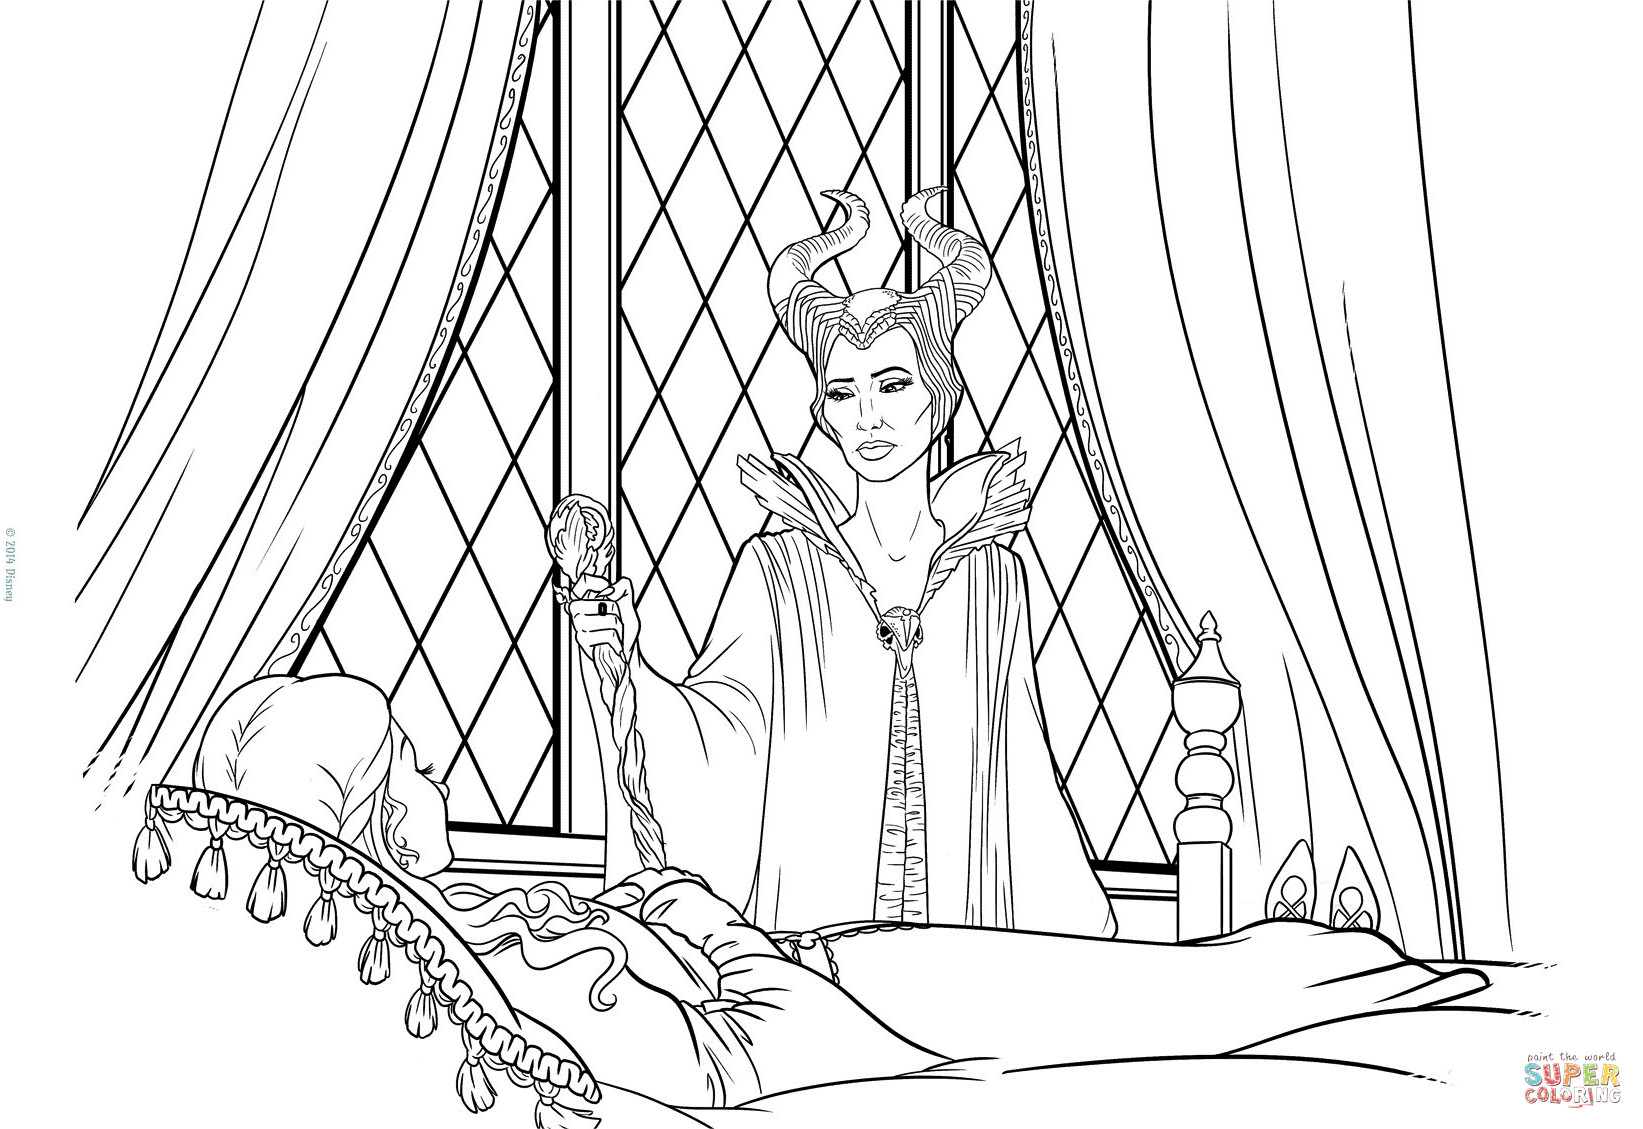 Maleficent Coloring Pages  Maleficent Apologizes to Aurora coloring page